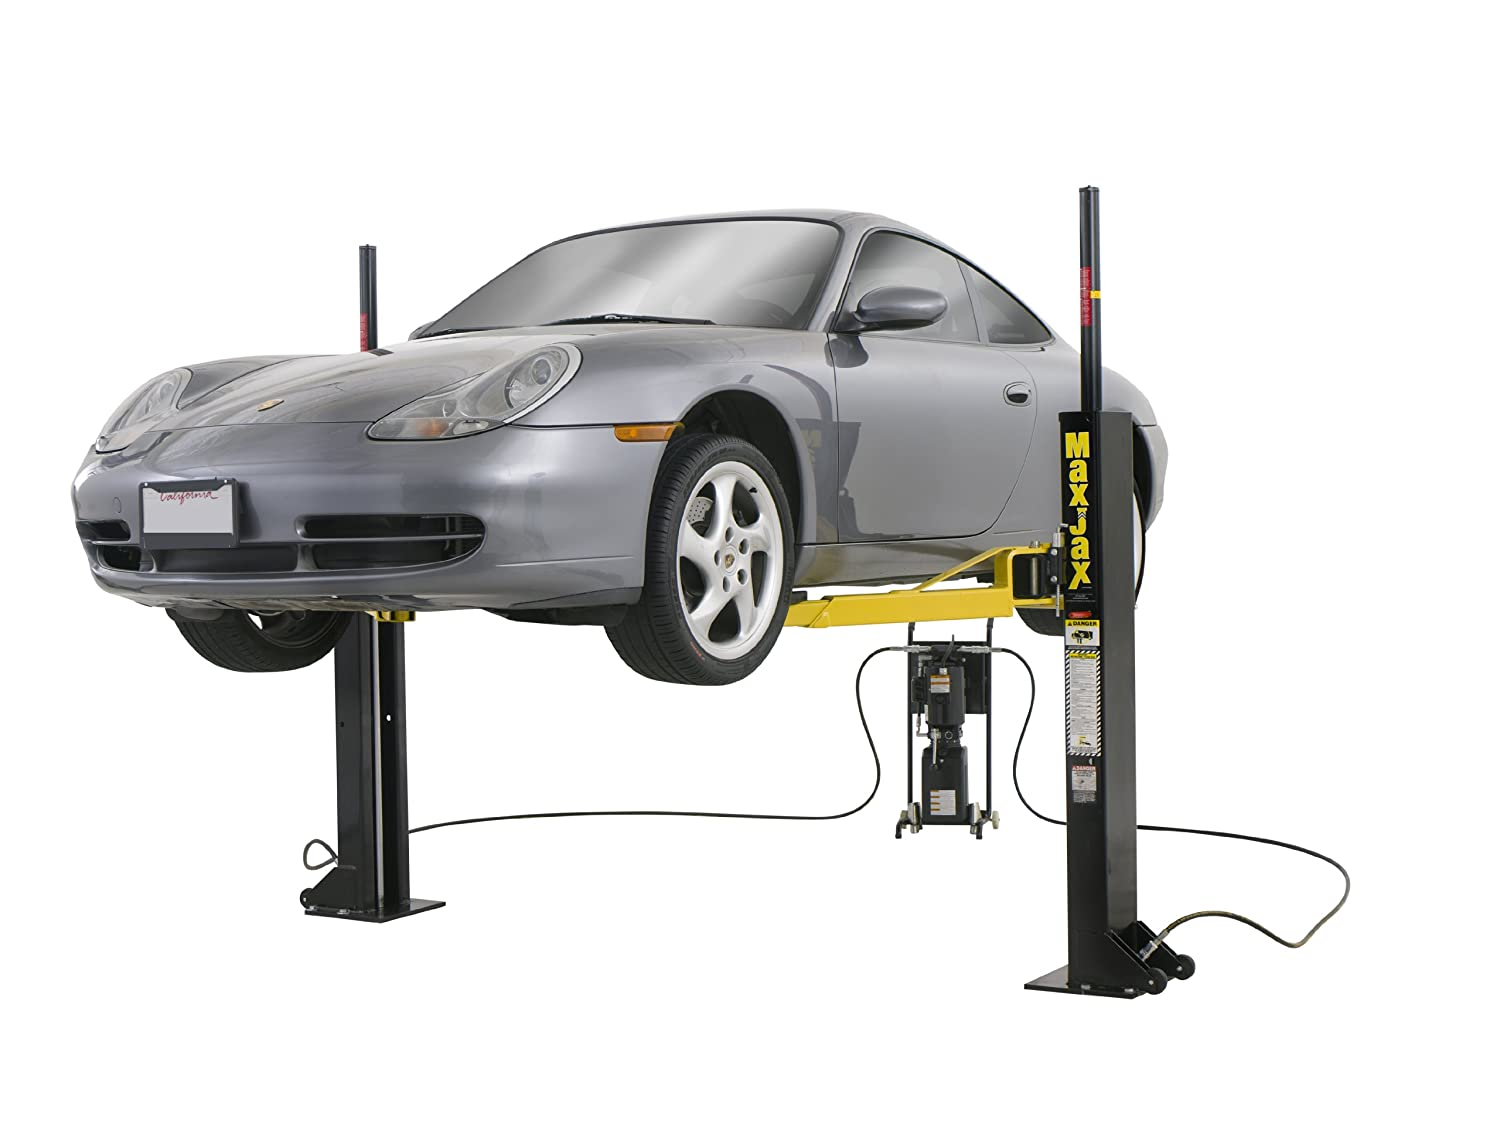 Garage car lift system cost 13